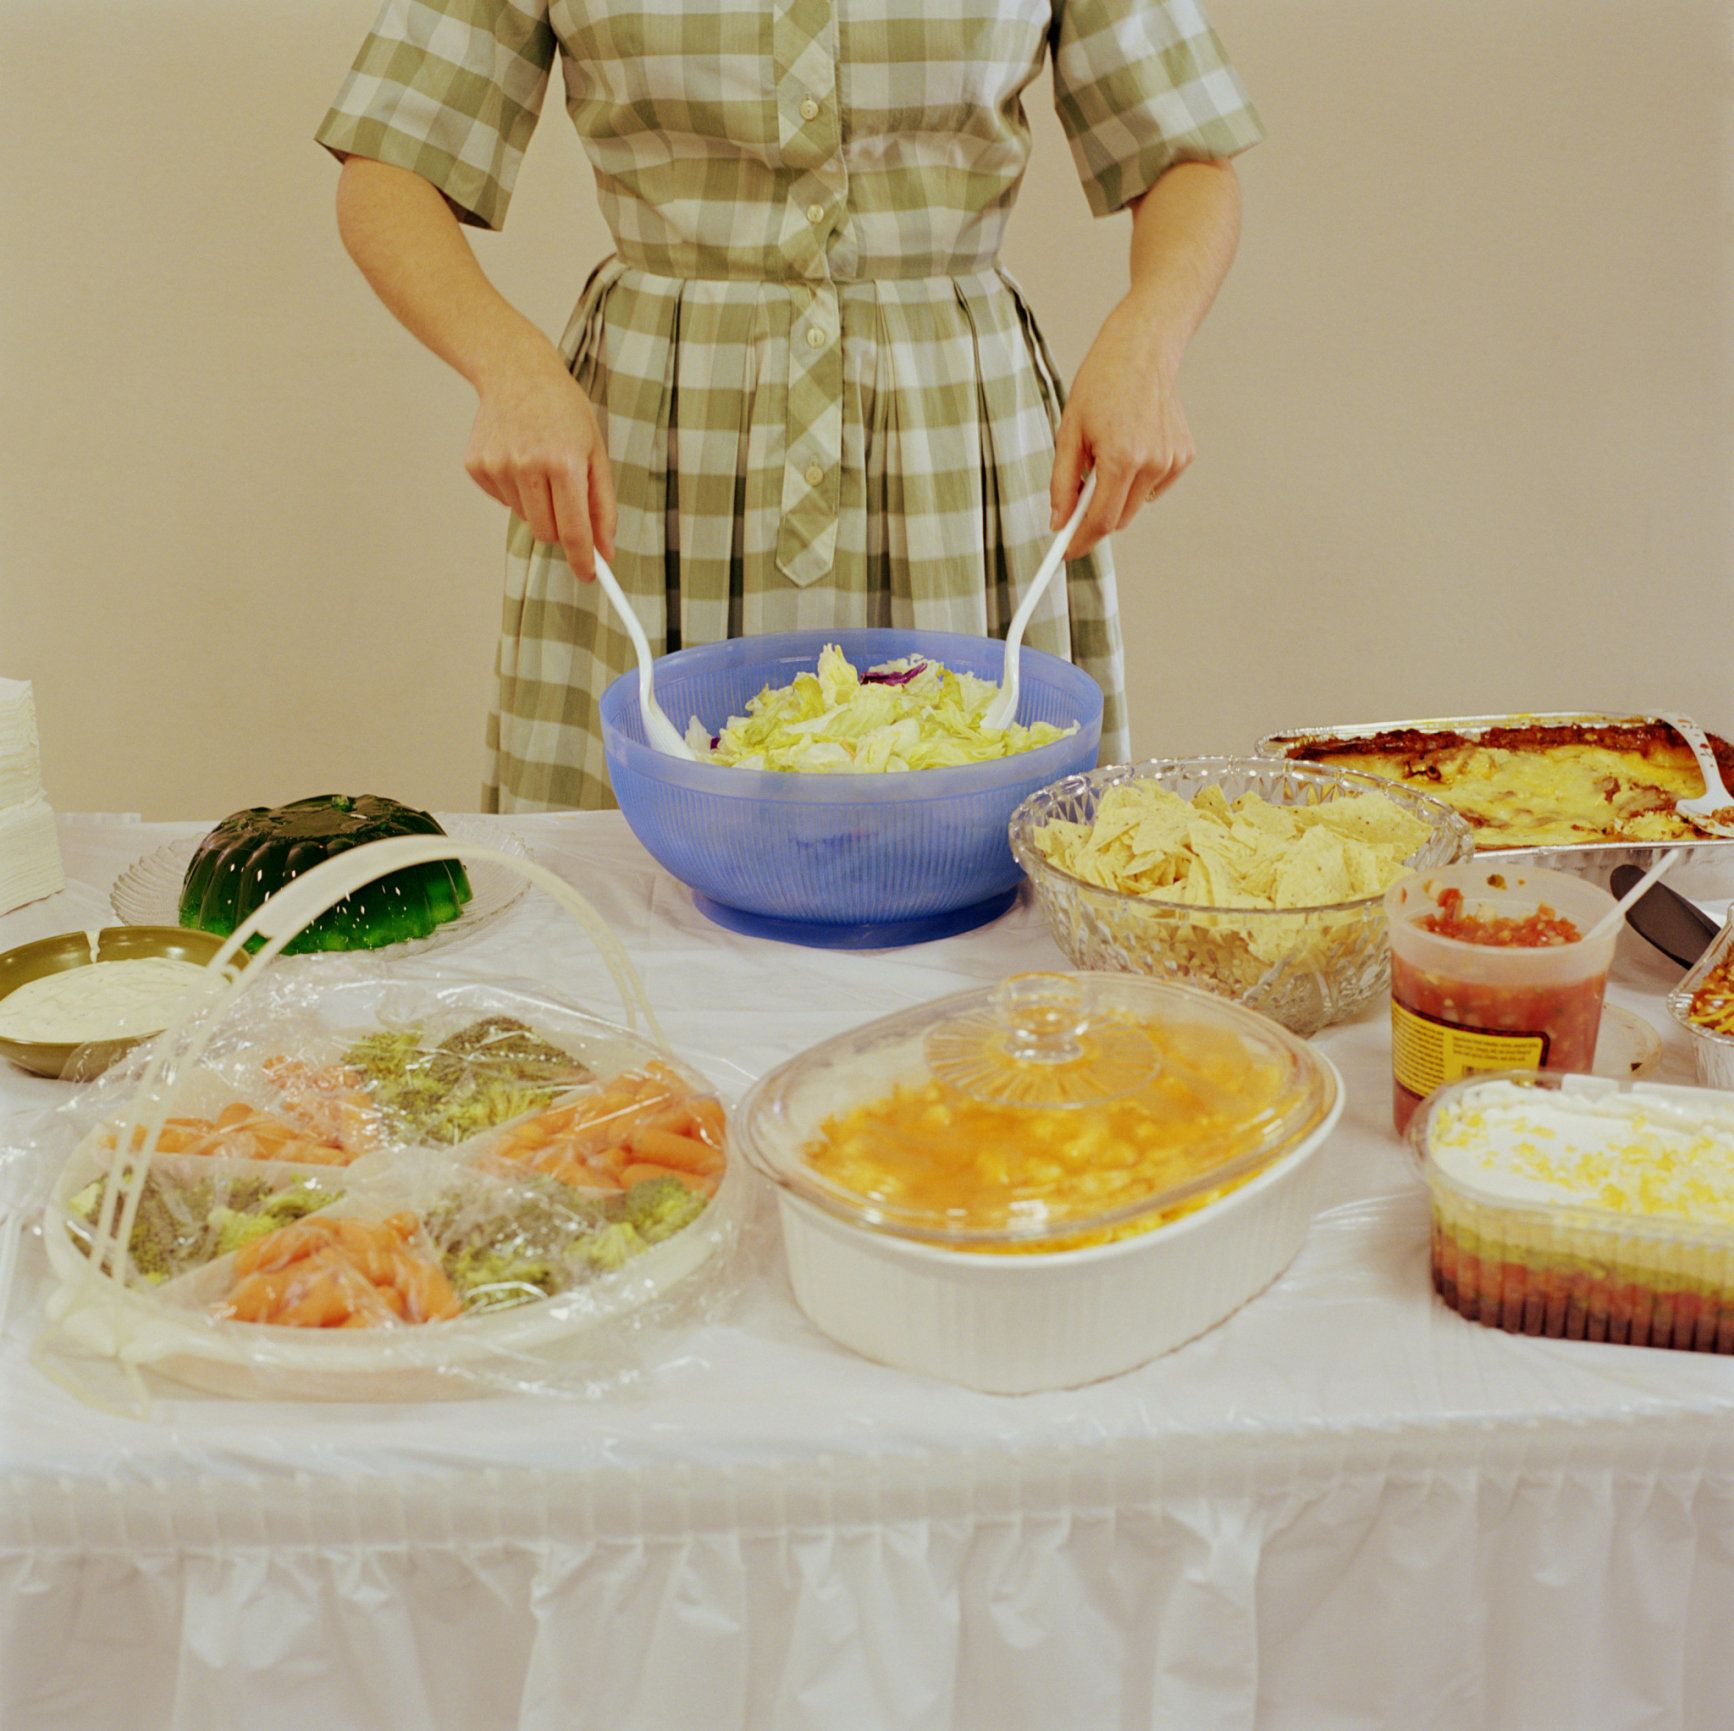 Woman tossing salad in bowl, different foods on table